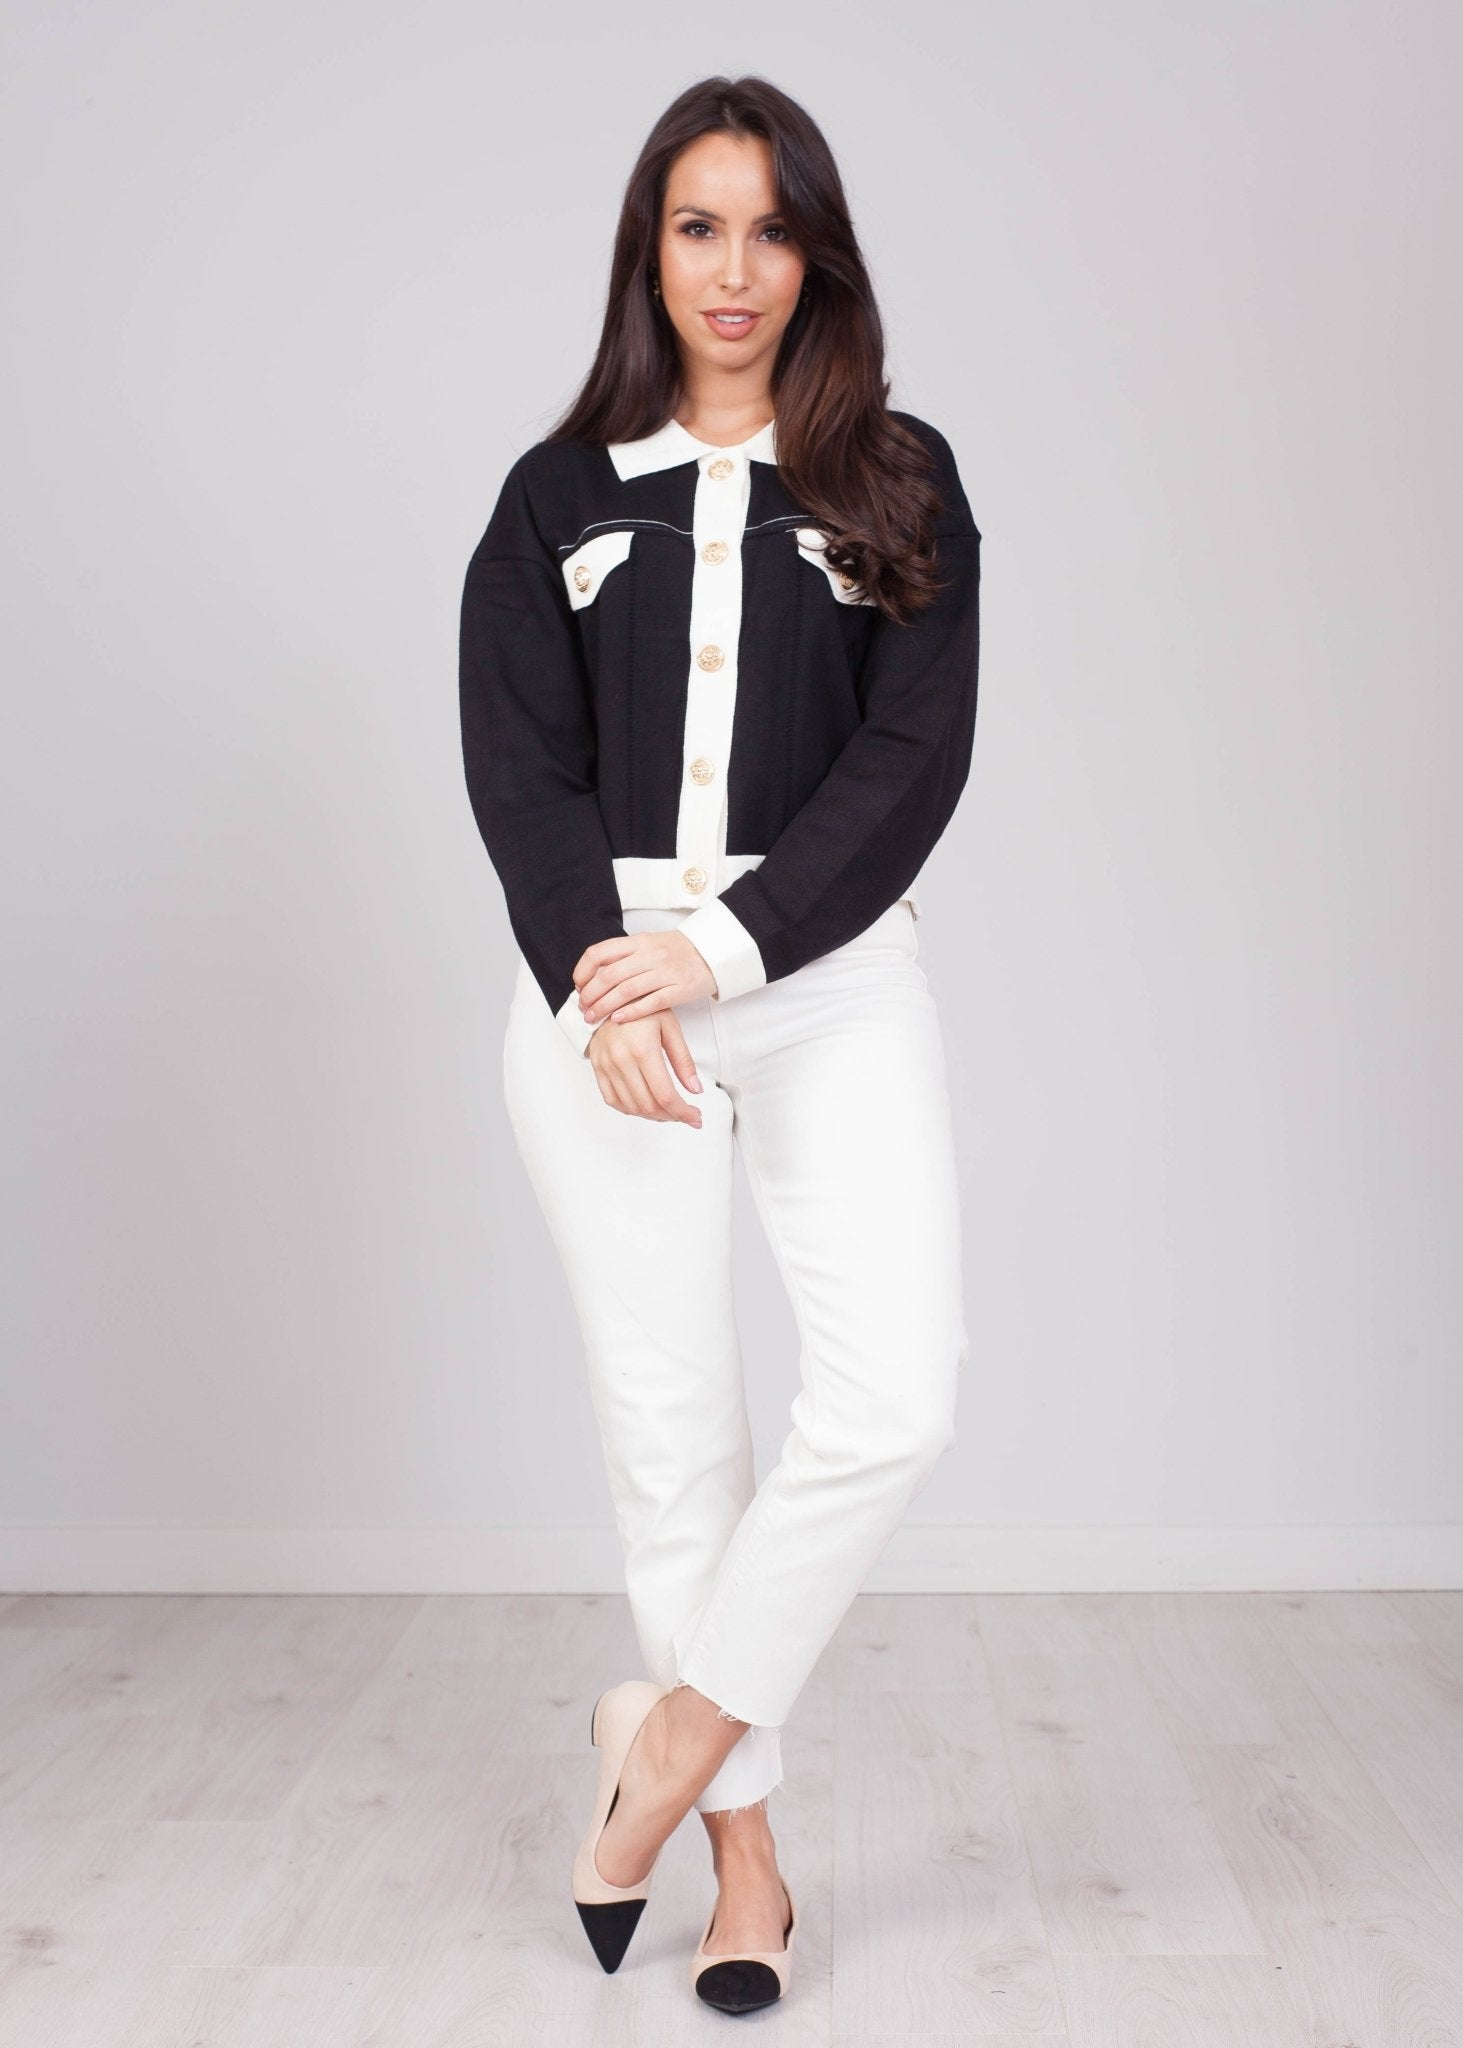 Emilia Button up Cardigan in Black and Cream - The Walk in Wardrobe